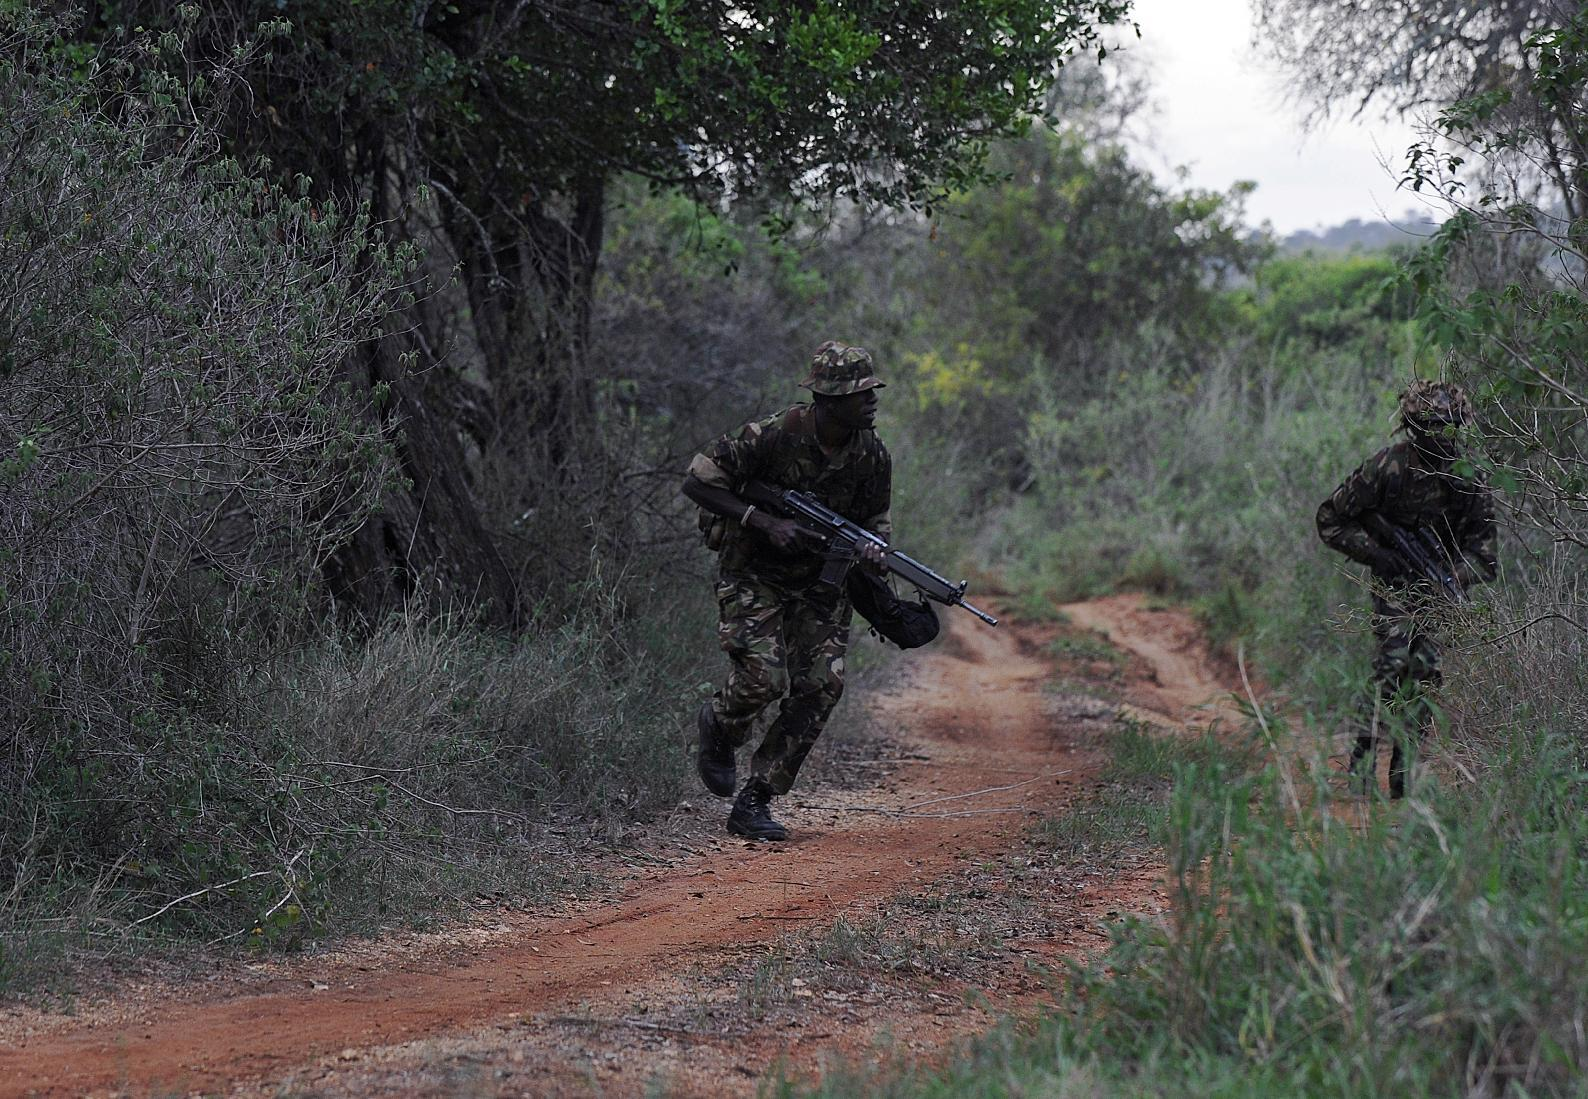 Members of an elite ranger team during a patrol at the Ol Jogi rhino sanctuary in Nairobi on August 6, 2014 (AFP Photo/Tony Karumba)